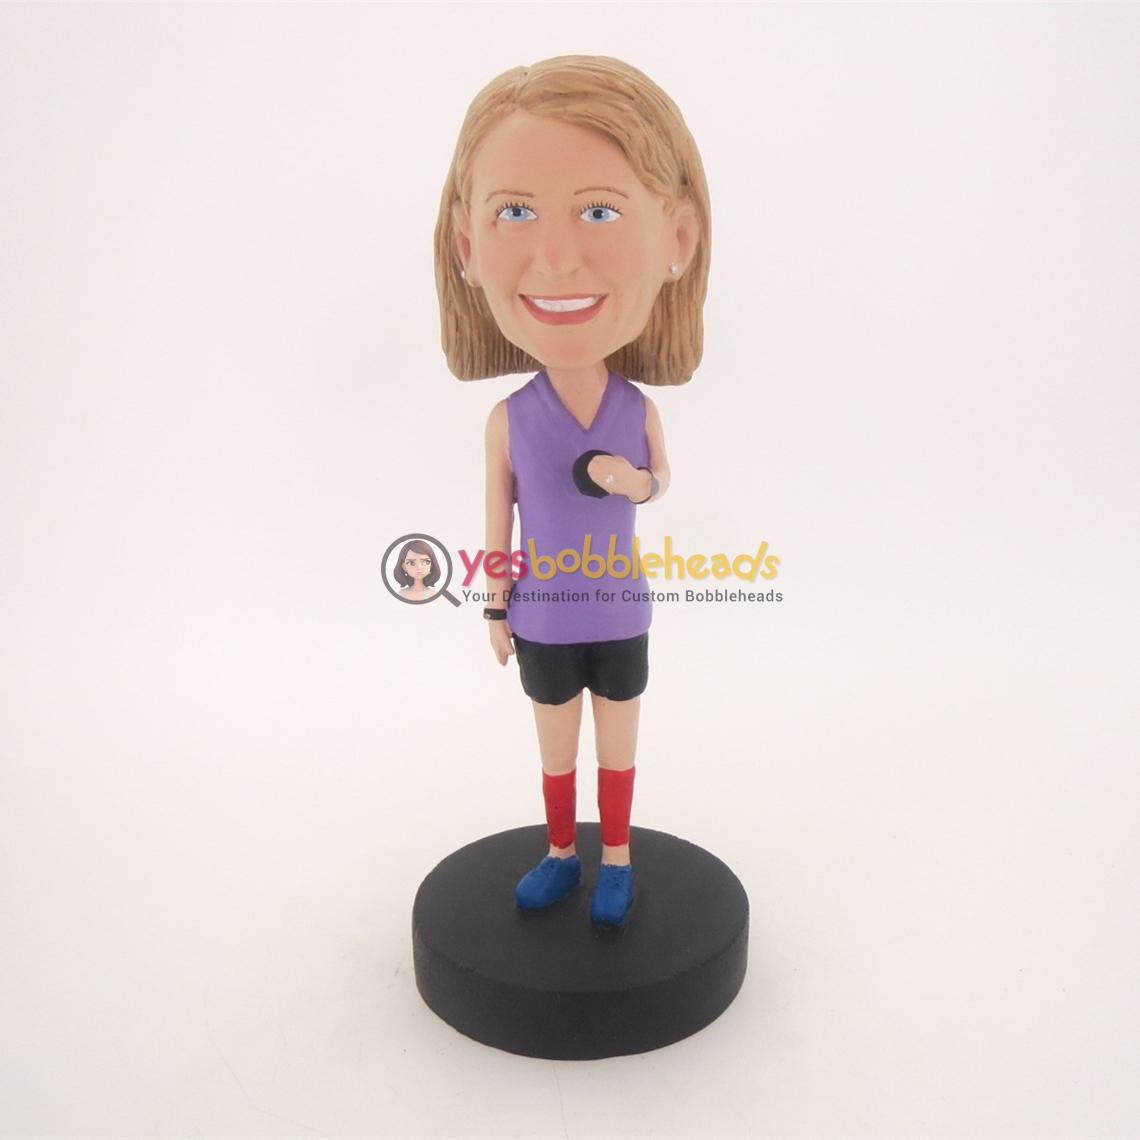 Picture of Custom Bobblehead Doll: Girl Holding a Small Ball